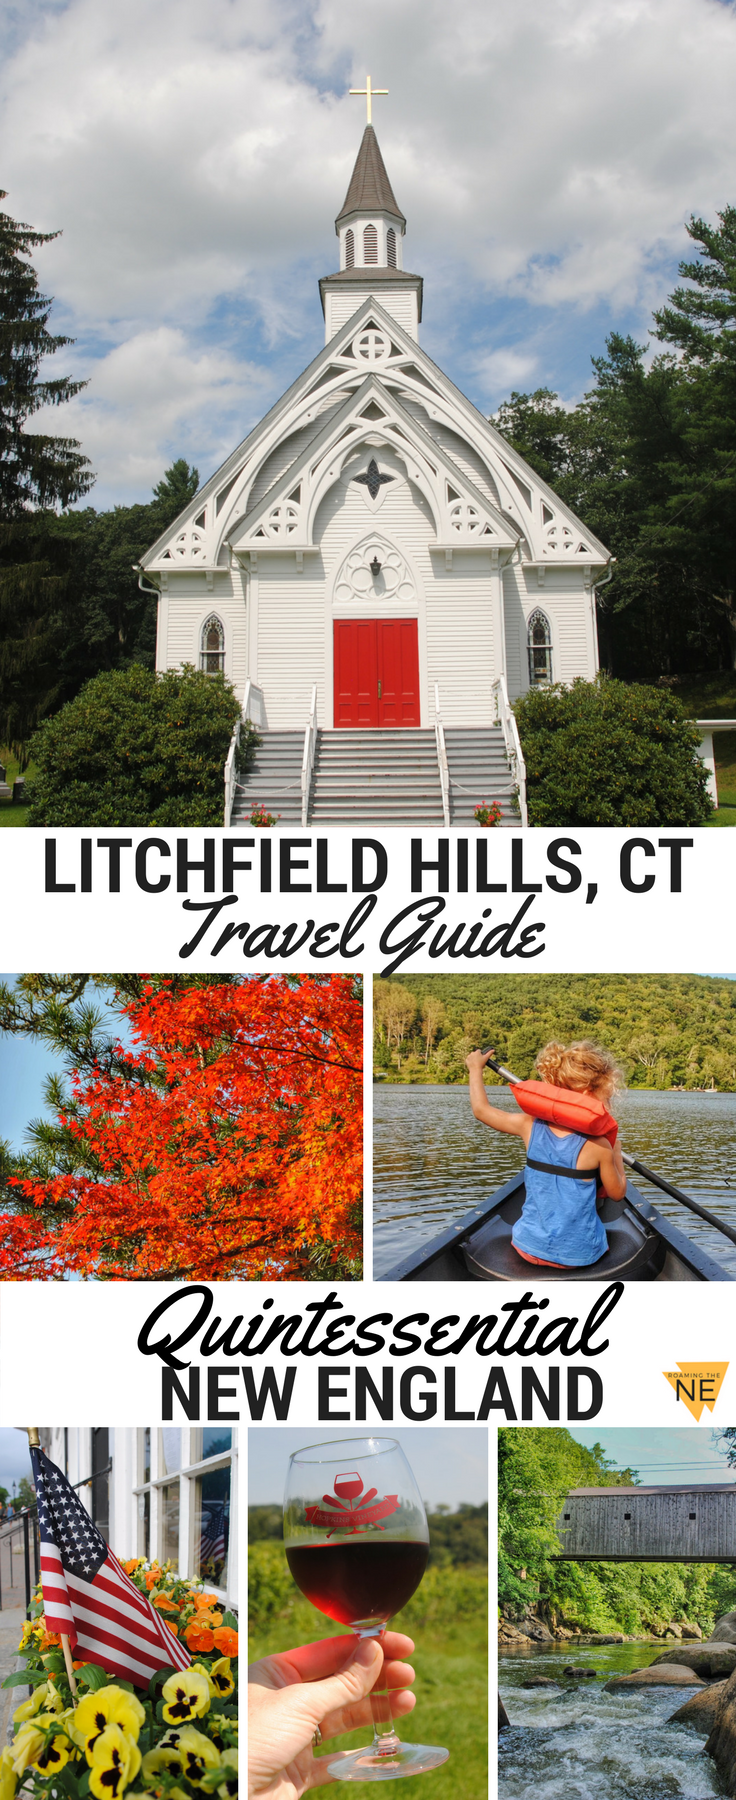 Travel Guide Litchfield Hills CT.png